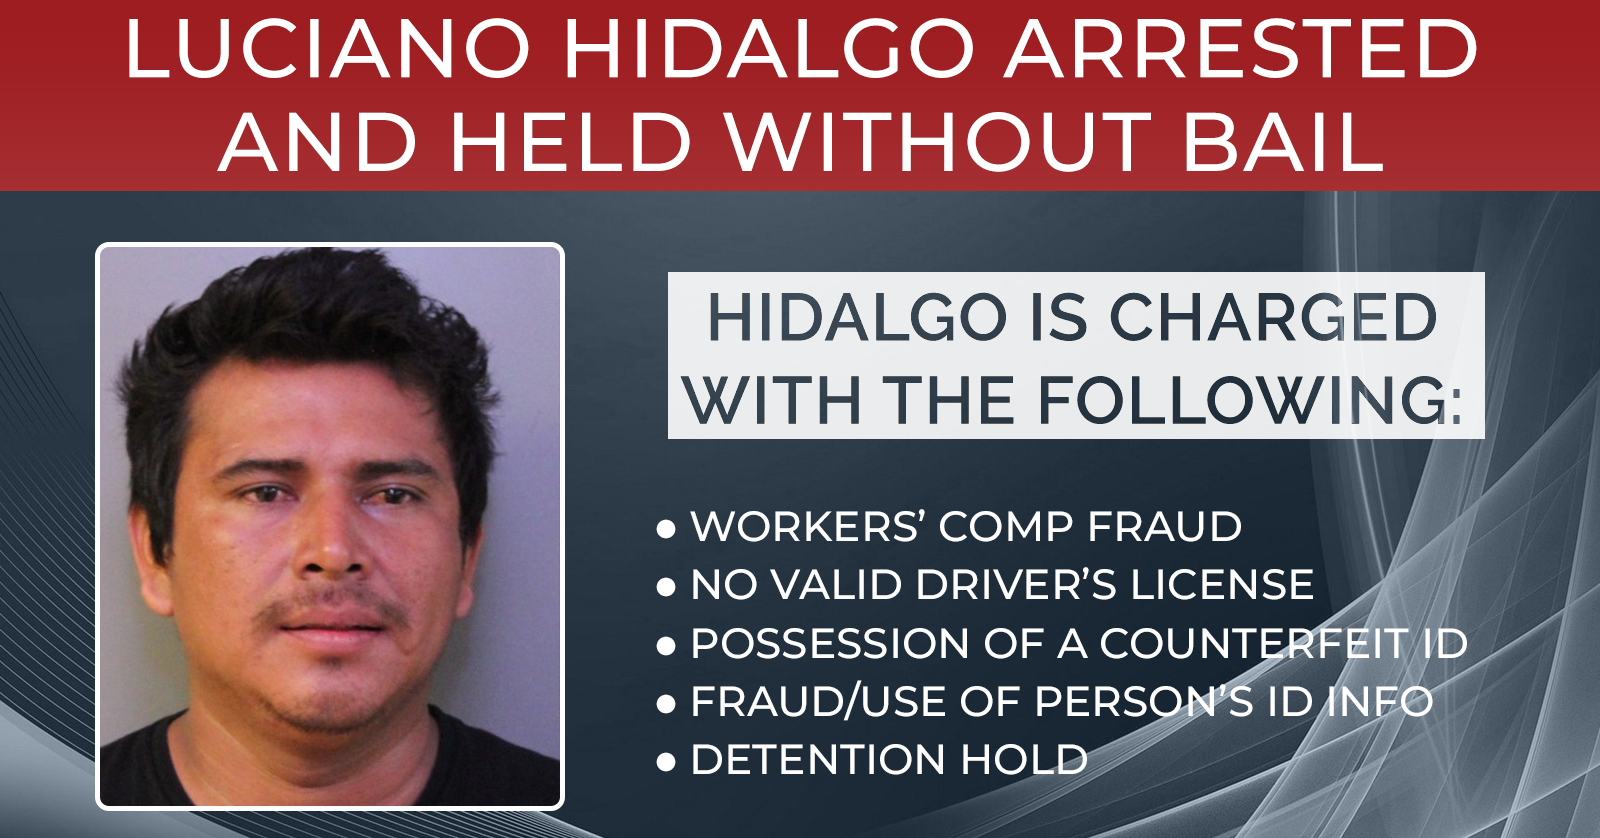 Luciano Hidalgo arrested and held without bail.